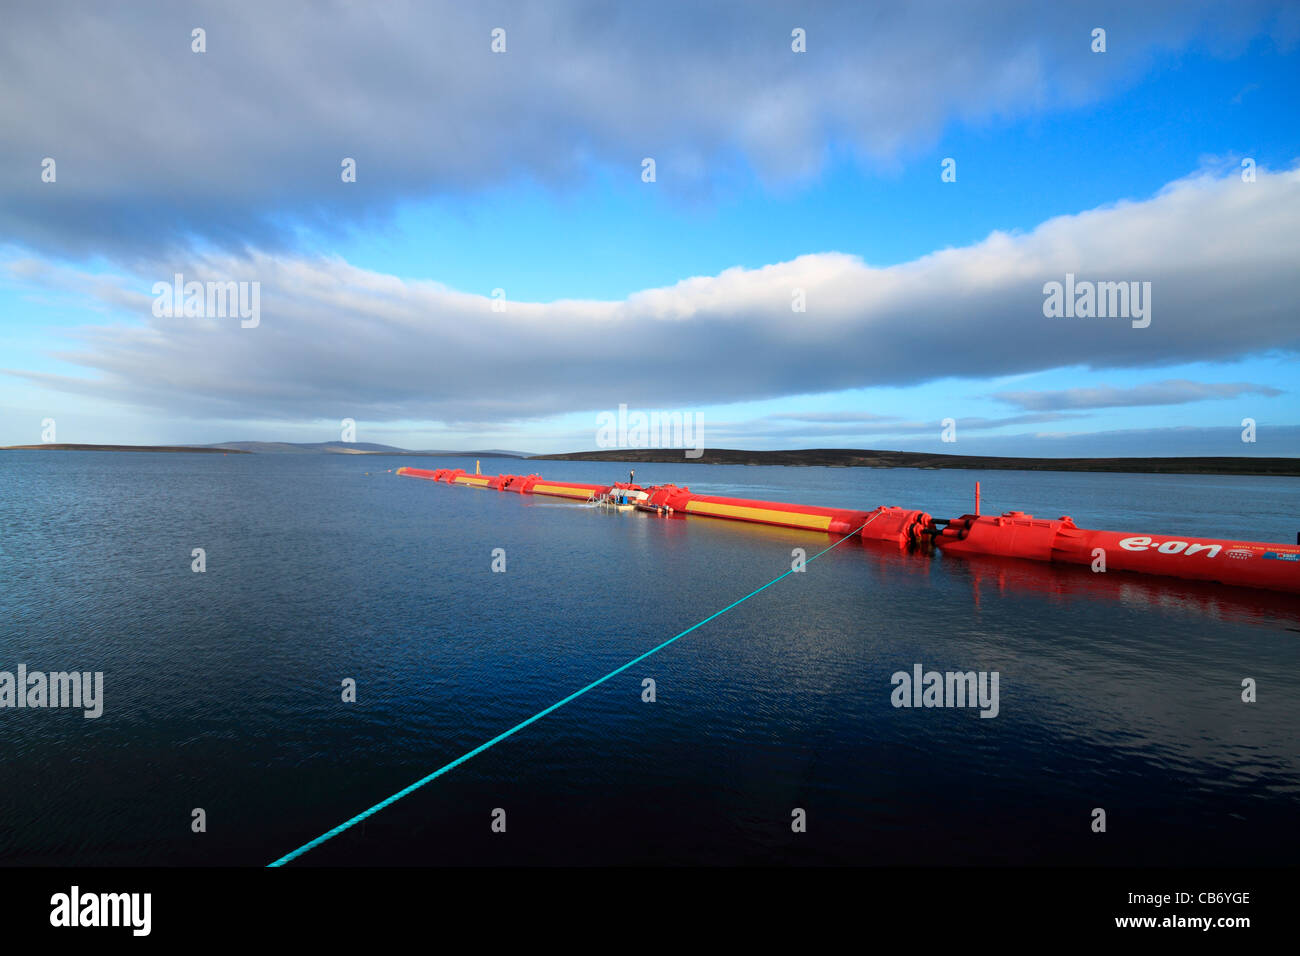 Orkney, Pelamis 2 wave energy converter at Lyness - Stock Image